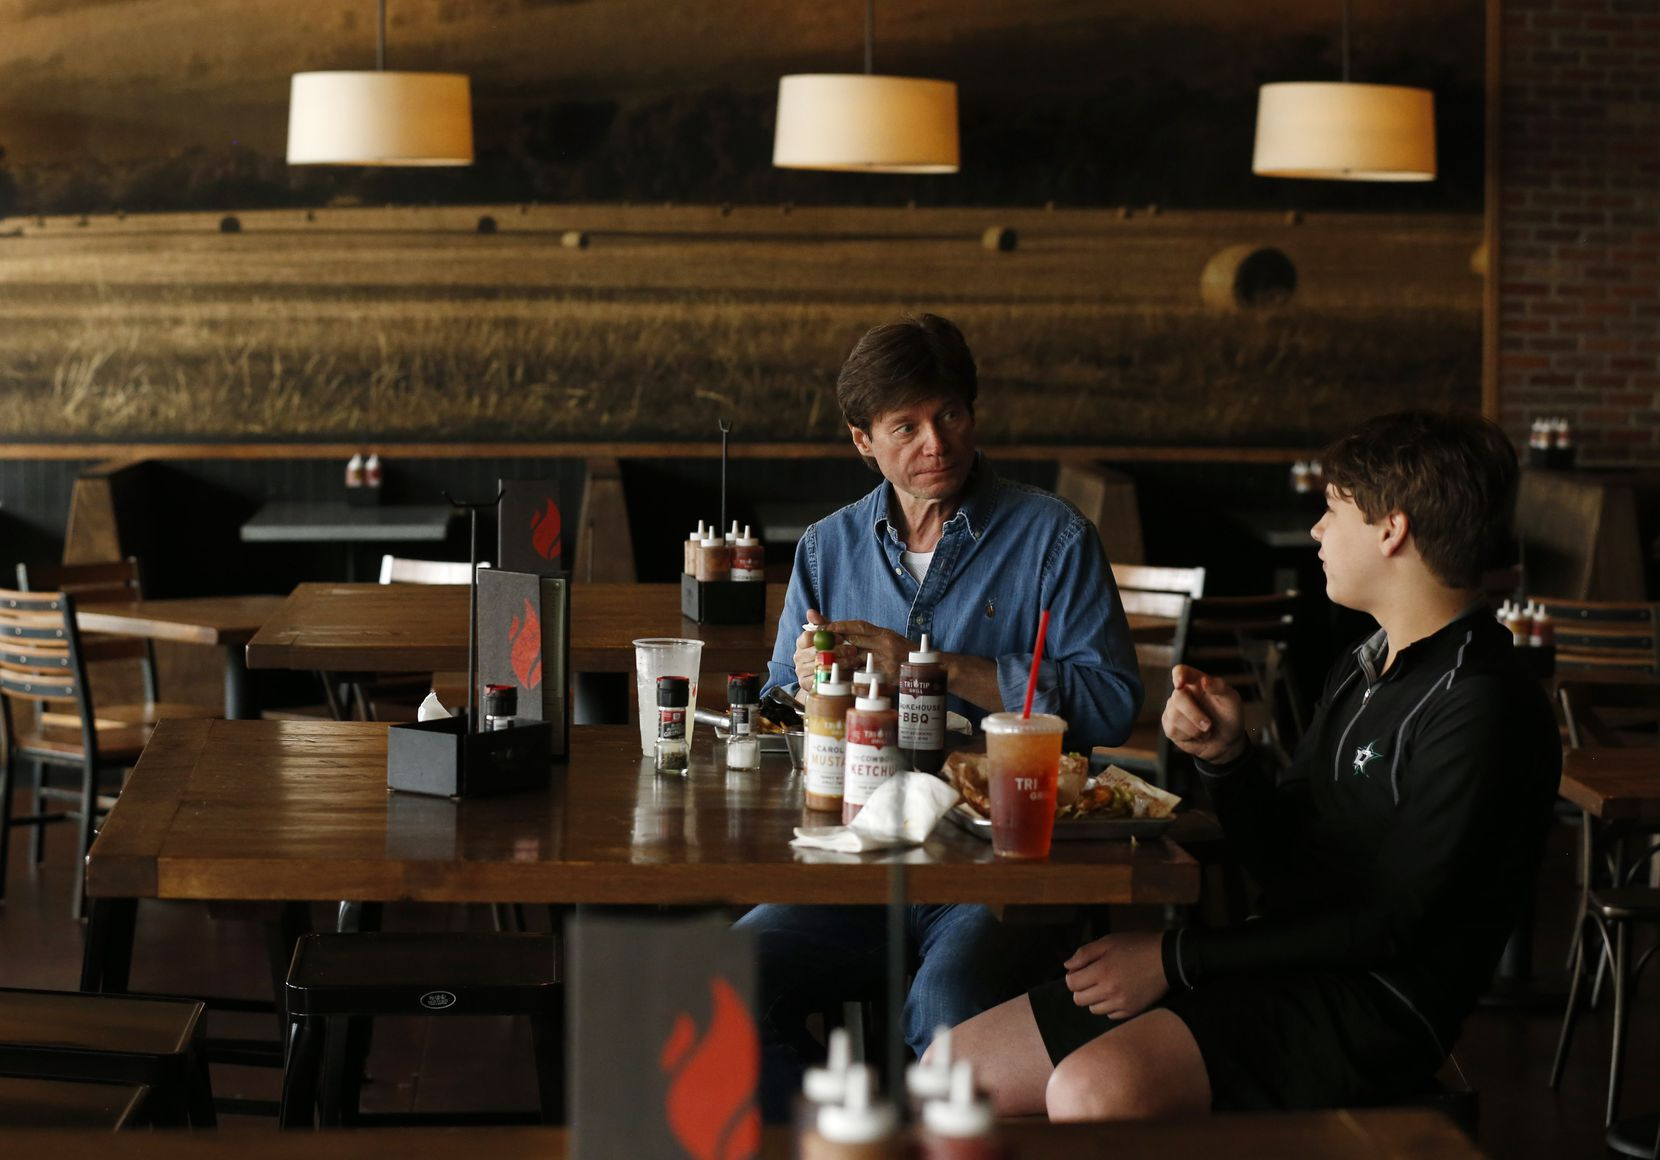 Roman Kikta and son Alex Kikta eat lunch together at Tri Tip Grill at The Star in Frisco, Texas, on Thursday, March 19, 2020. Texas Gov. Greg Abbott announced Thursday the temporary closing of schools, restaurants, gyms and bars statewide at a news conference.